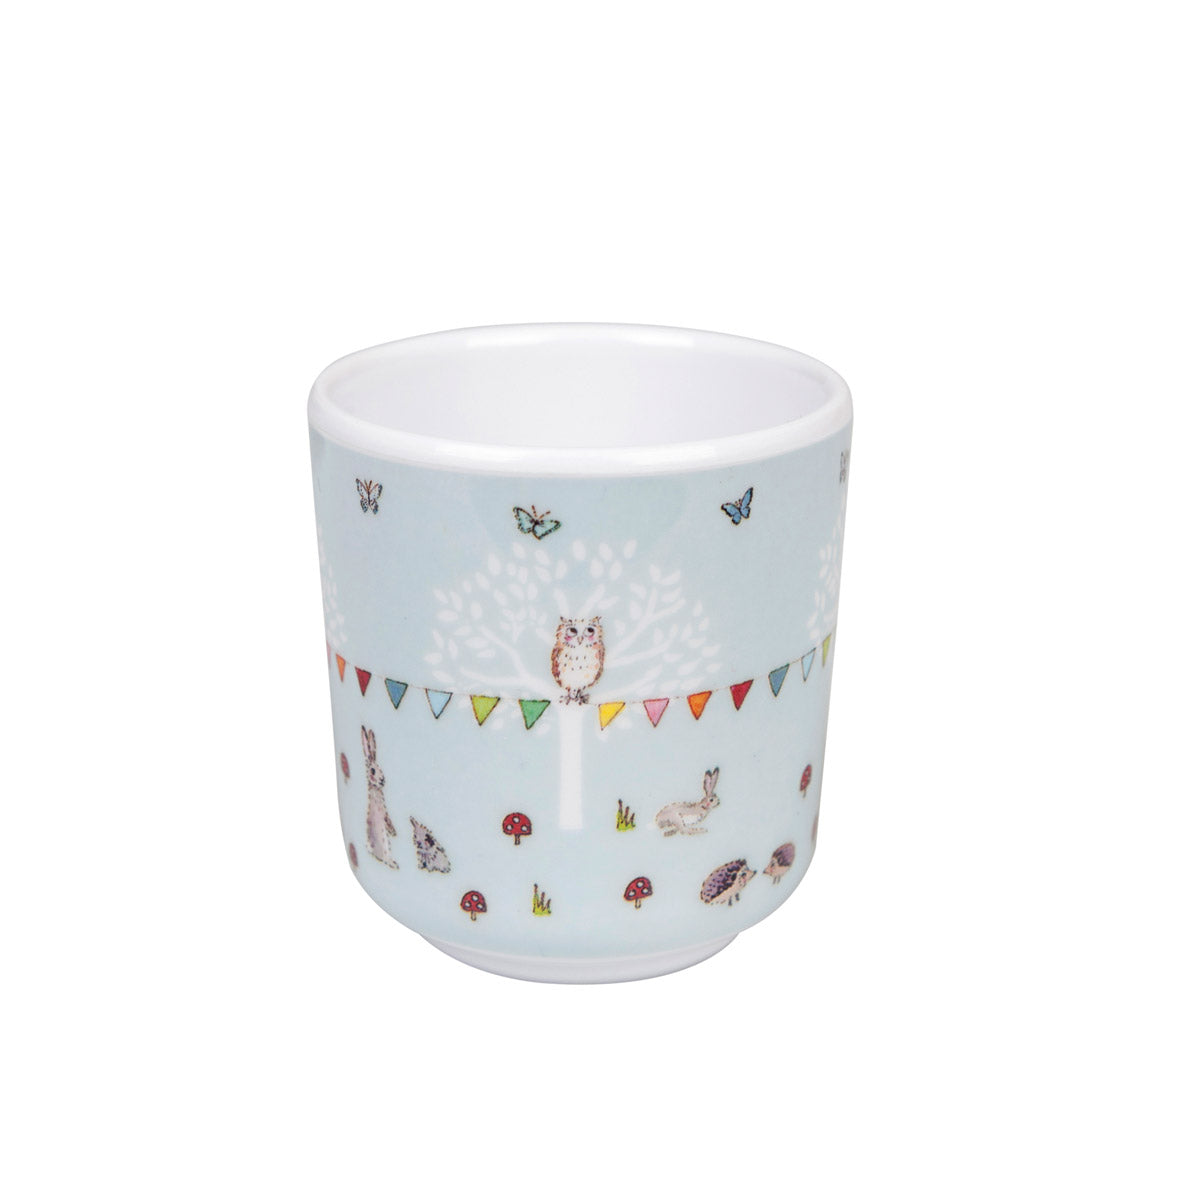 Woodland Party Kids Melamine Dinner Set